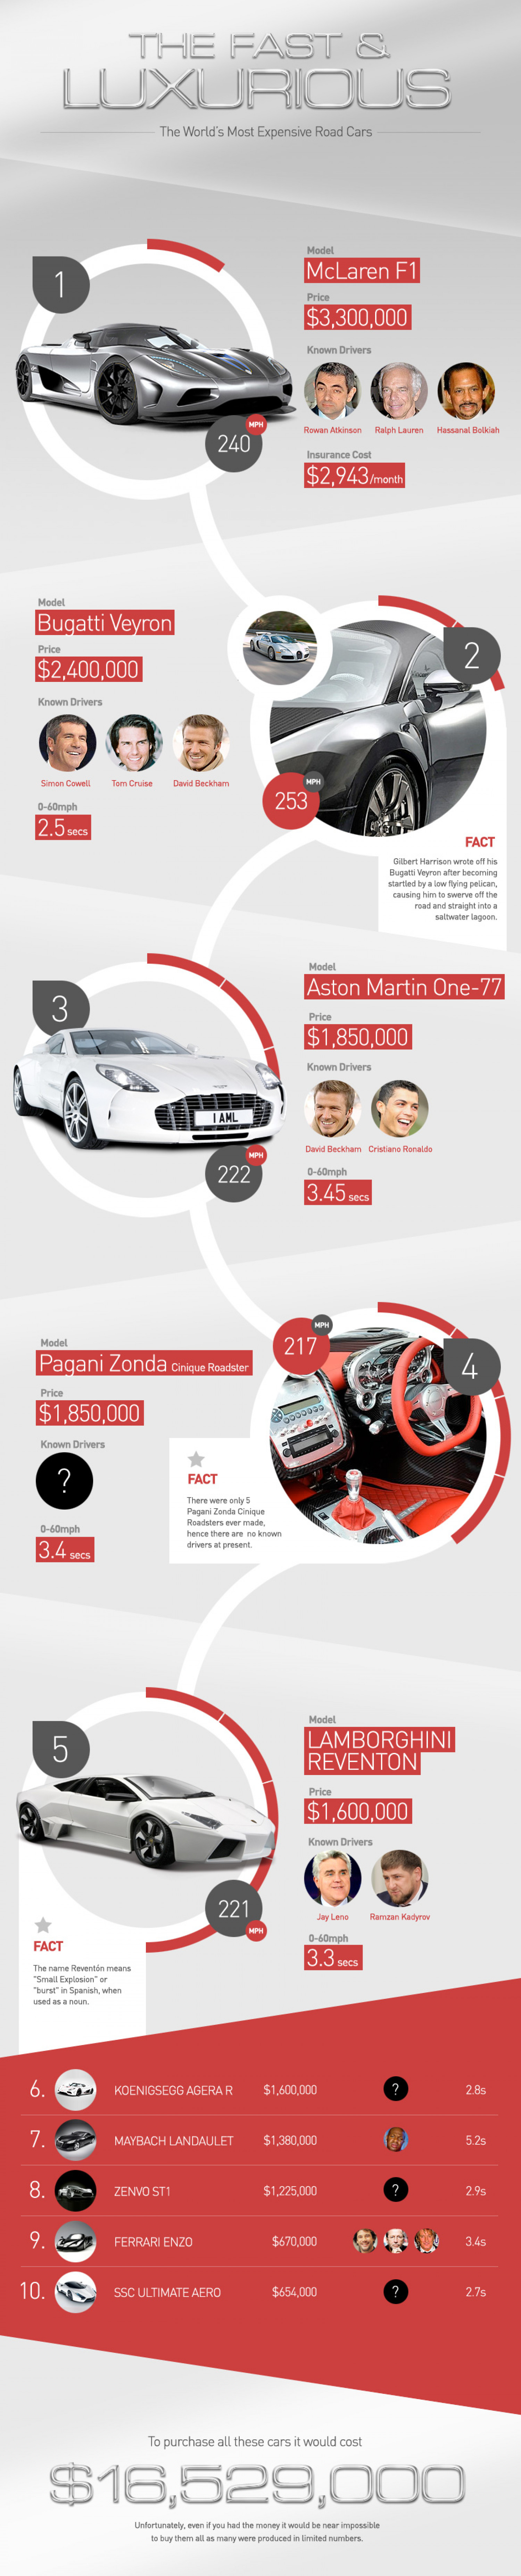 World's Most Expensive Cars Infographic